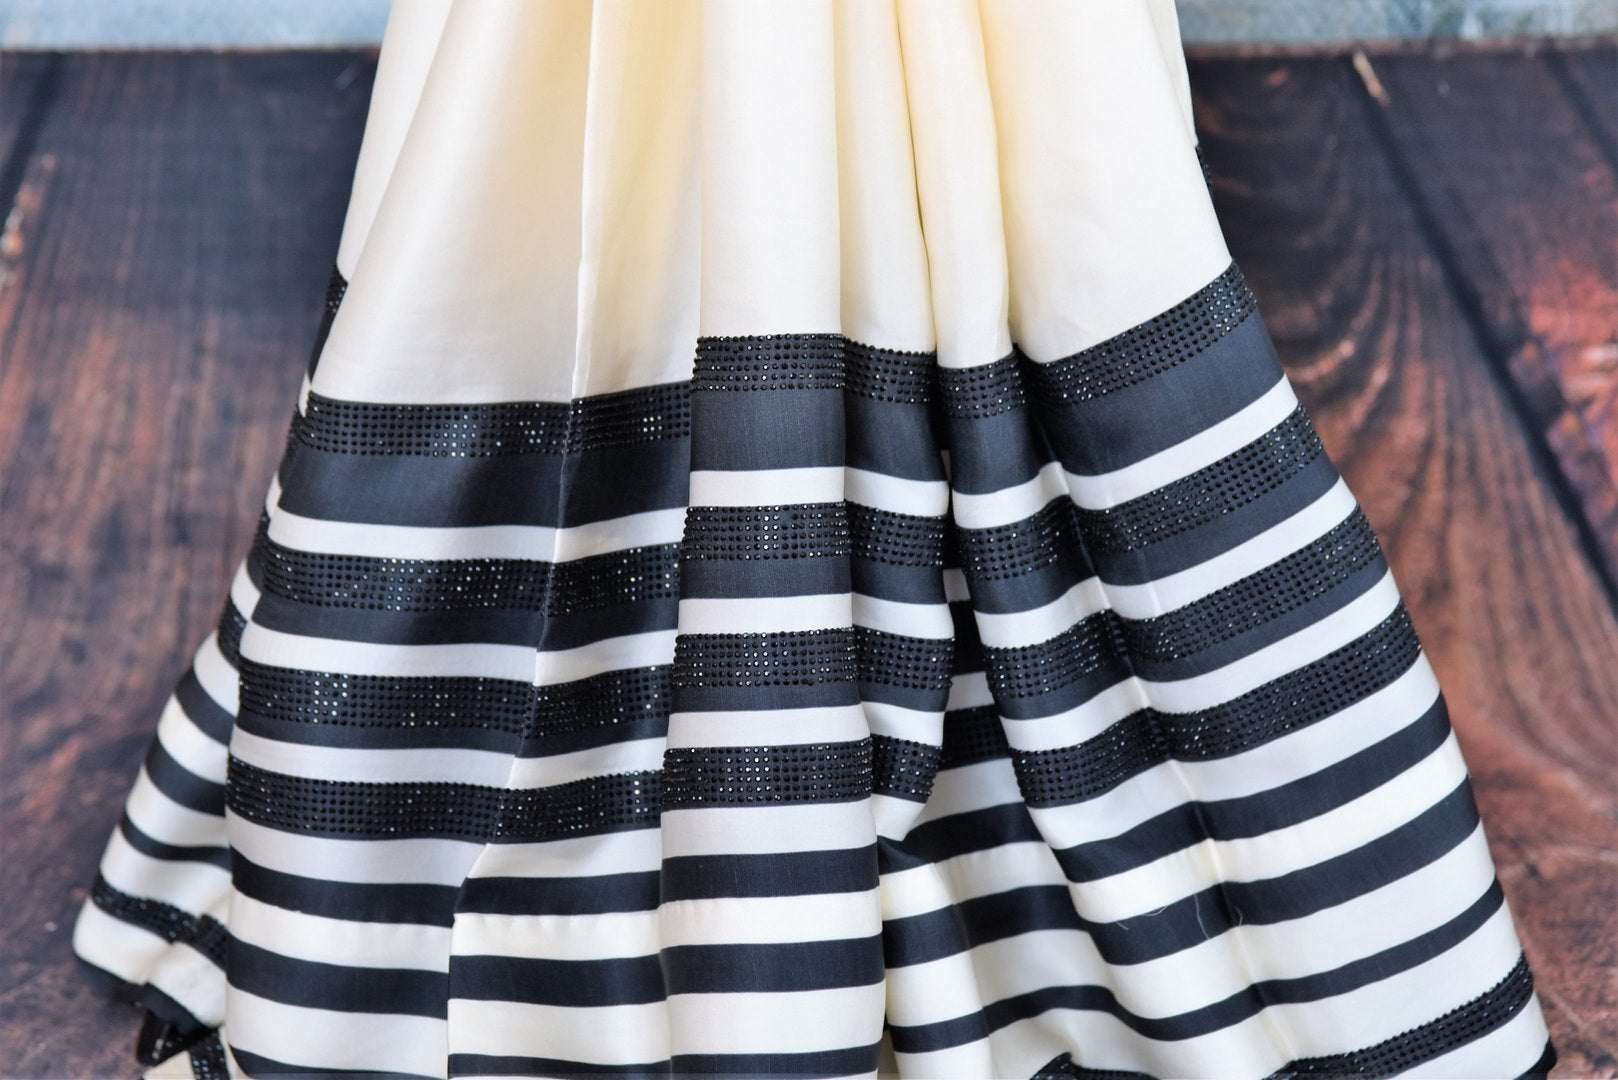 Buy stylish off-white and black stonework striped crepe silk sari online in USA. The saree comes with a matching black blouse piece. Add more such beautiful Indian designer saris to your ethnic wardrobe from Pure Elegance exclusive Indian clothing store in USA or shop online.-pleats